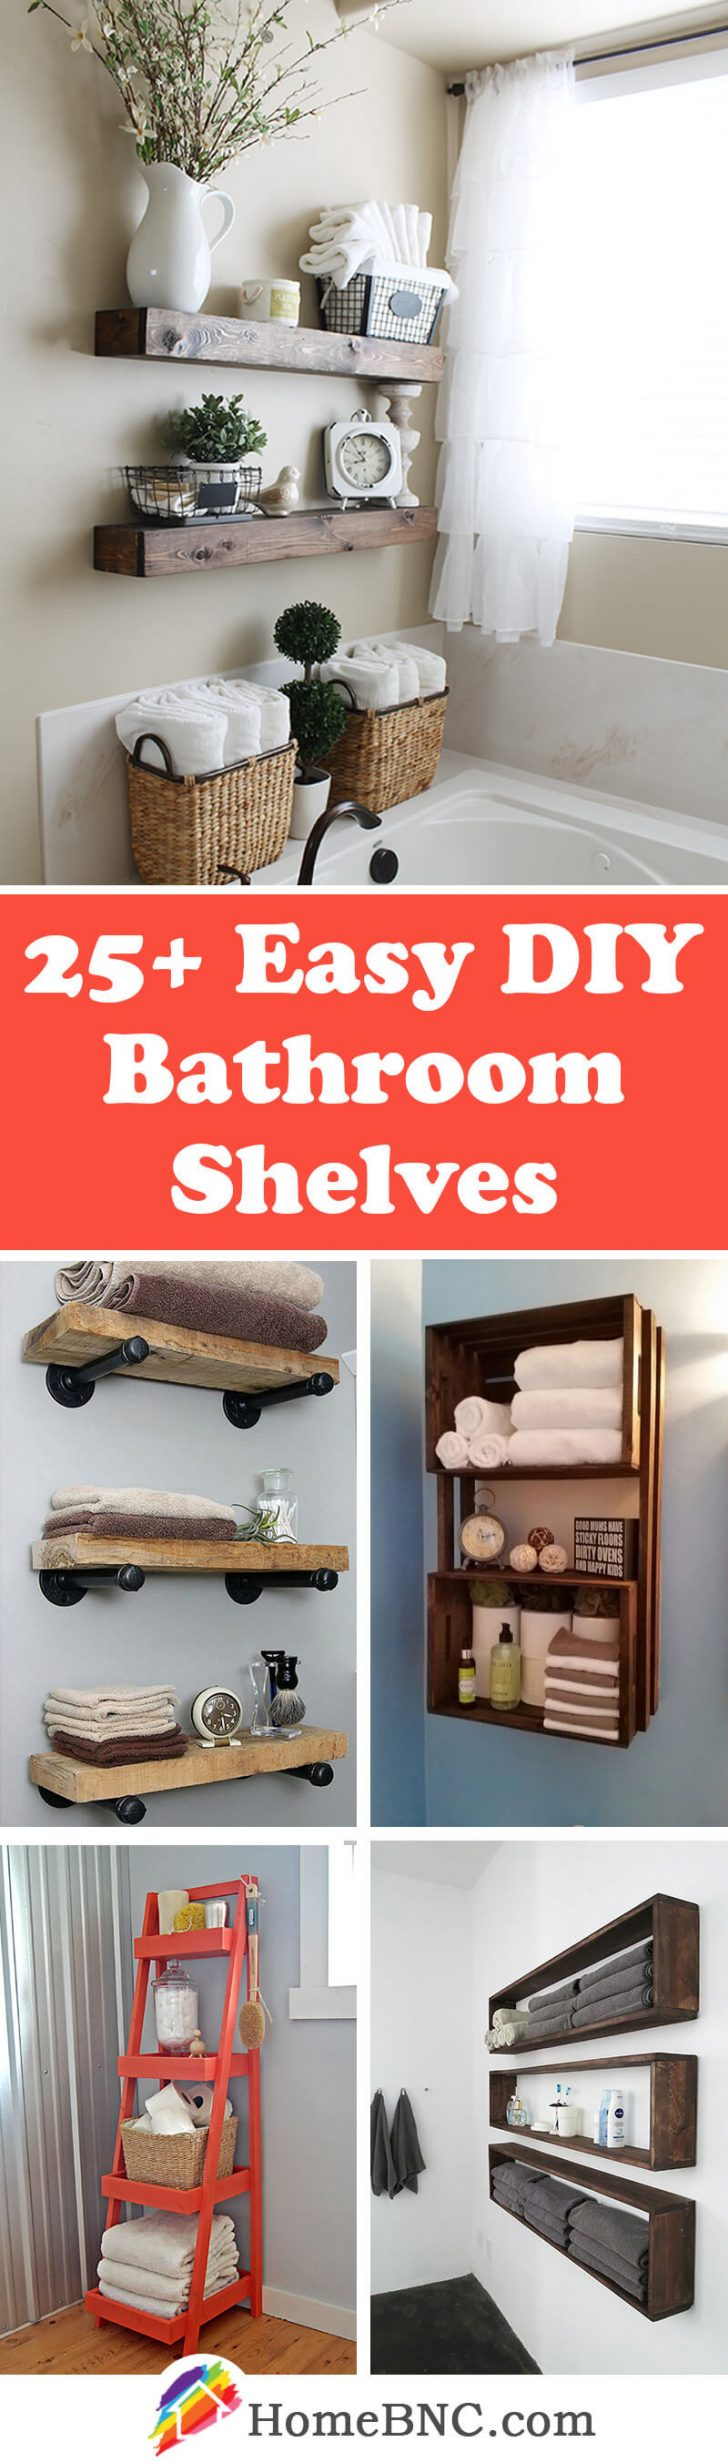 Bathroom Shelf Decorating Ideas 2021